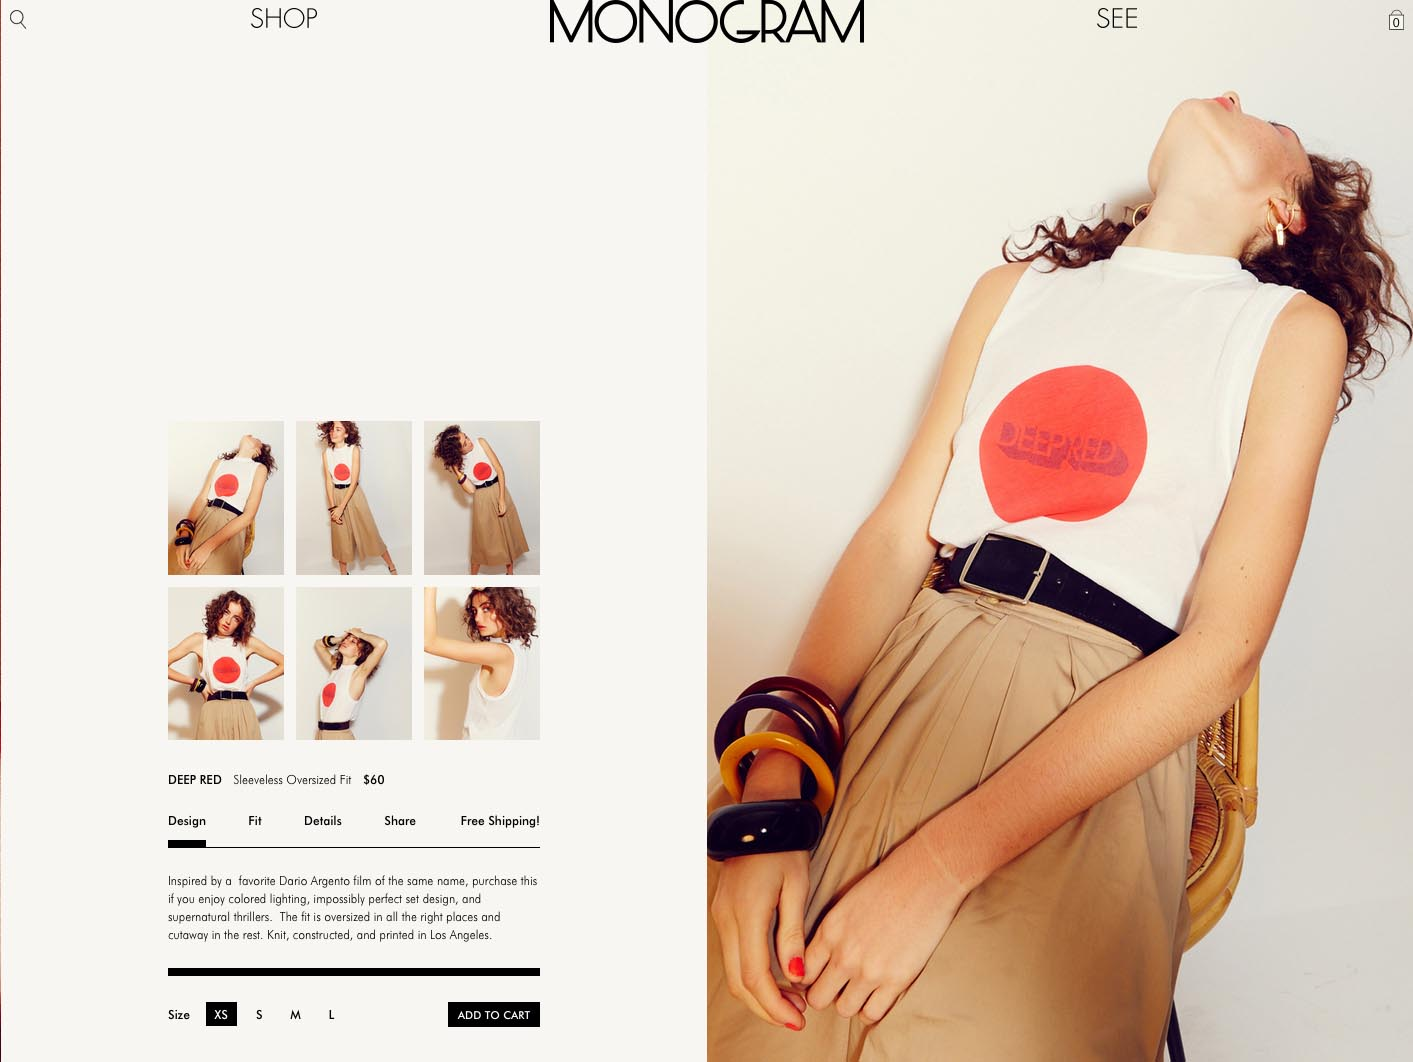 Monogram identity design by Scissor.